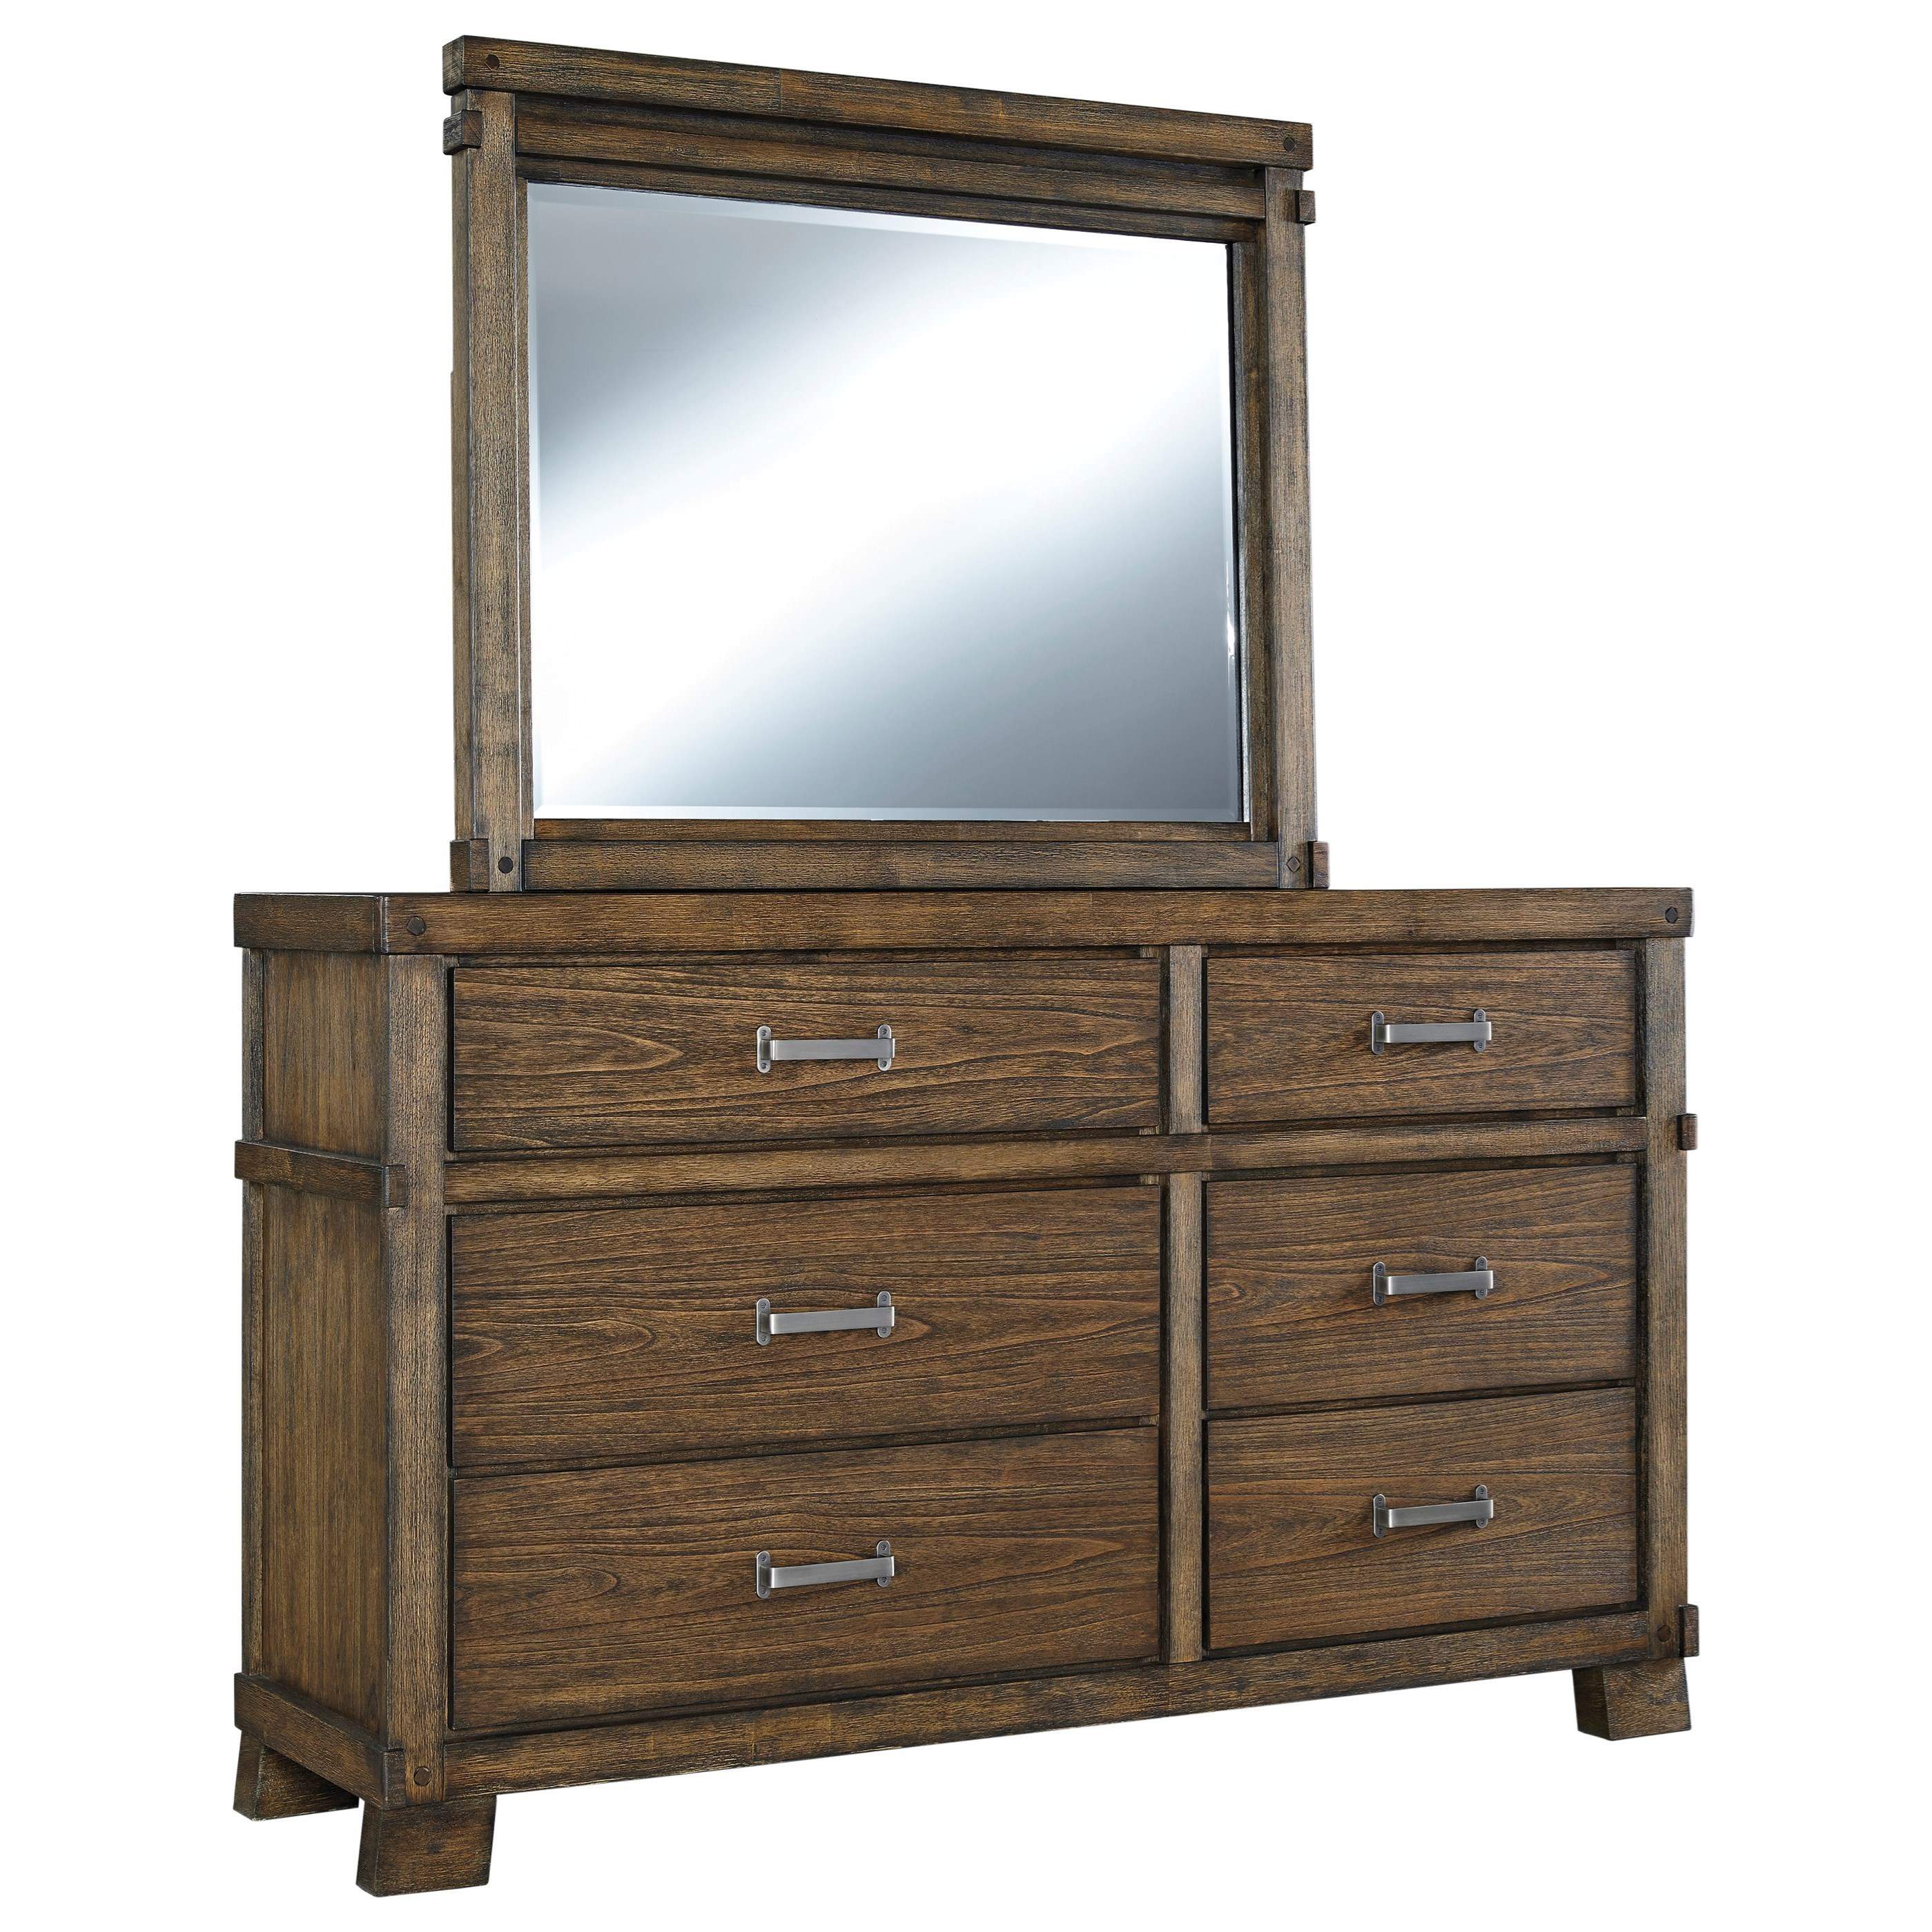 Signature Design by Ashley Leystone Dresser with Mirror - Item Number: B614-31+36